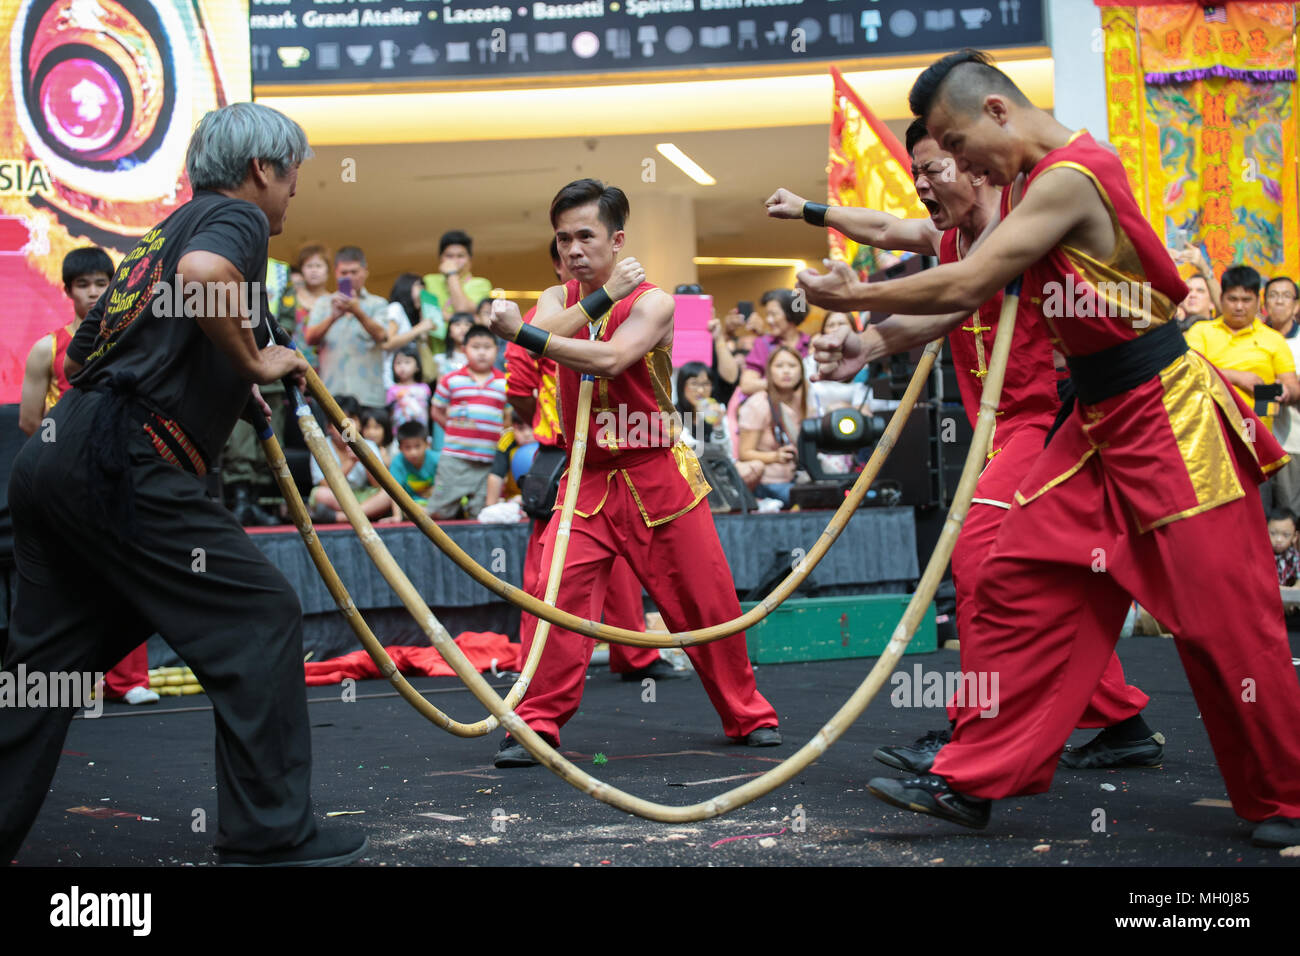 Chinese traditional stuntman bending bamboo spear with their throats at VIVA HOME shopping mall in Kuala Lumpur, Malaysia. - Stock Image